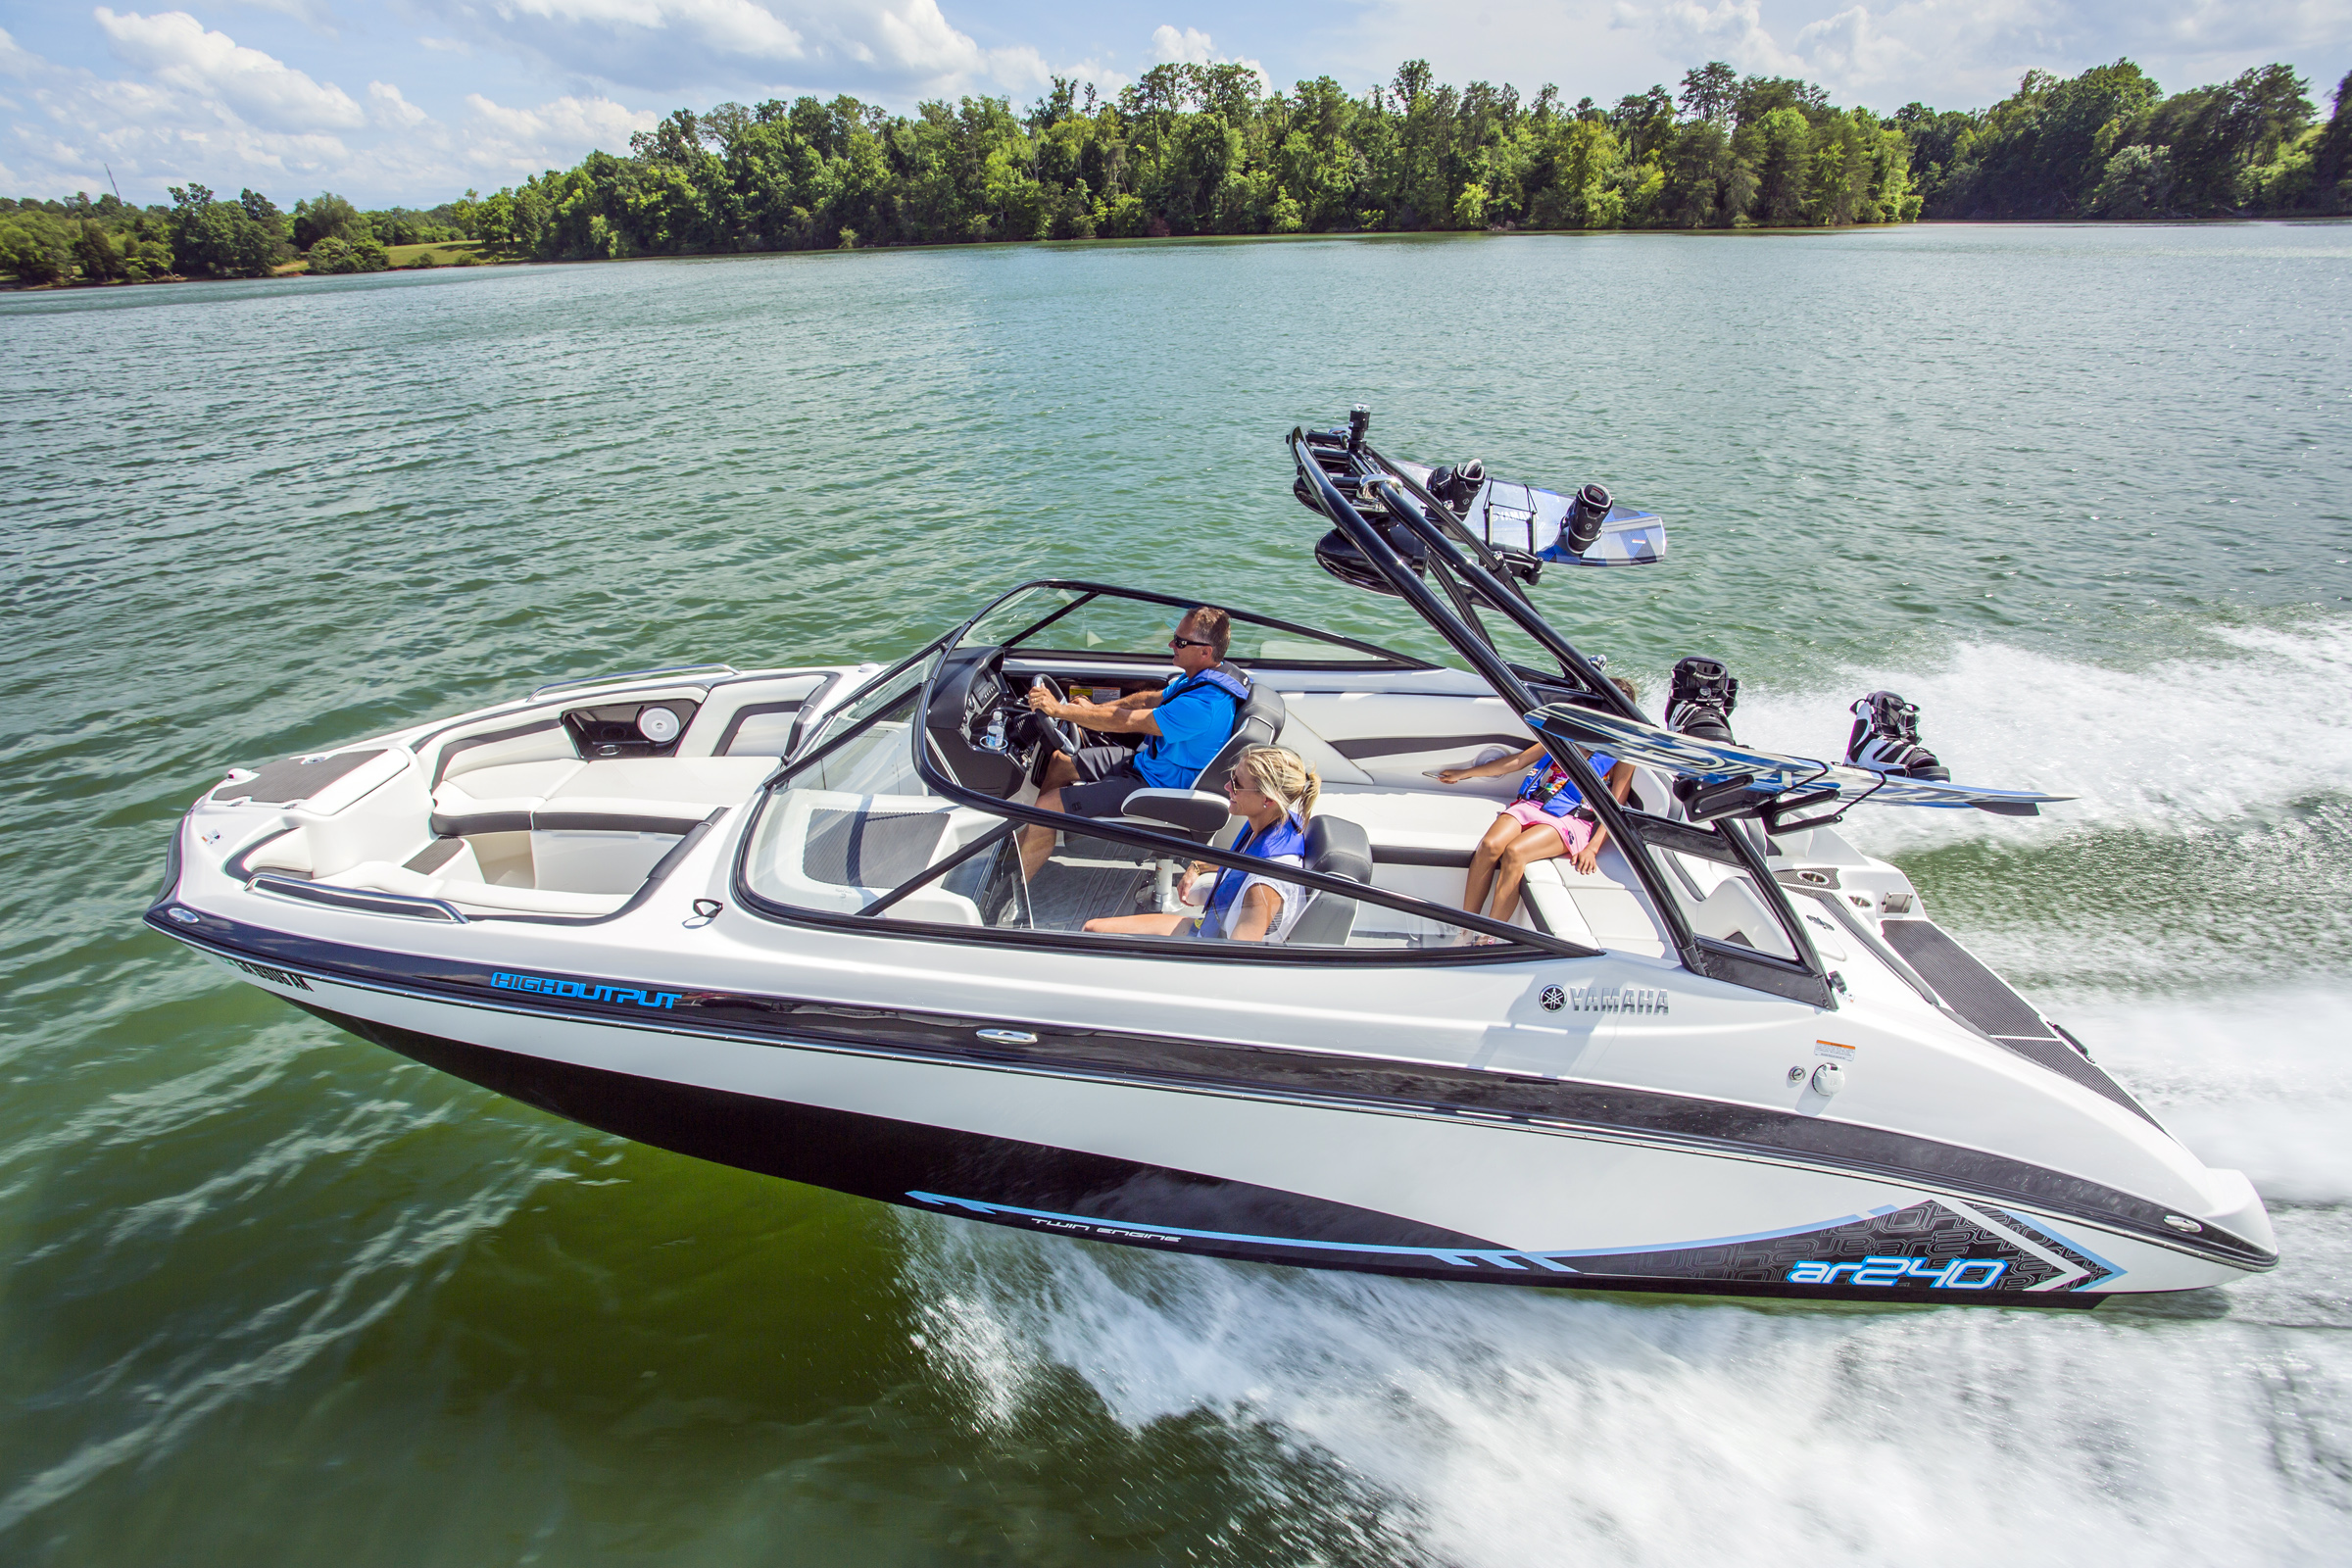 2015 Yamaha 240 Series Ultra Quiet With Sure Footed Tracking Wiring Harness Marine Engines Inboard Sterndrive Outboard The Ar240 Adds Bold Graphics And A Tow Sports Tower To Base Sx240